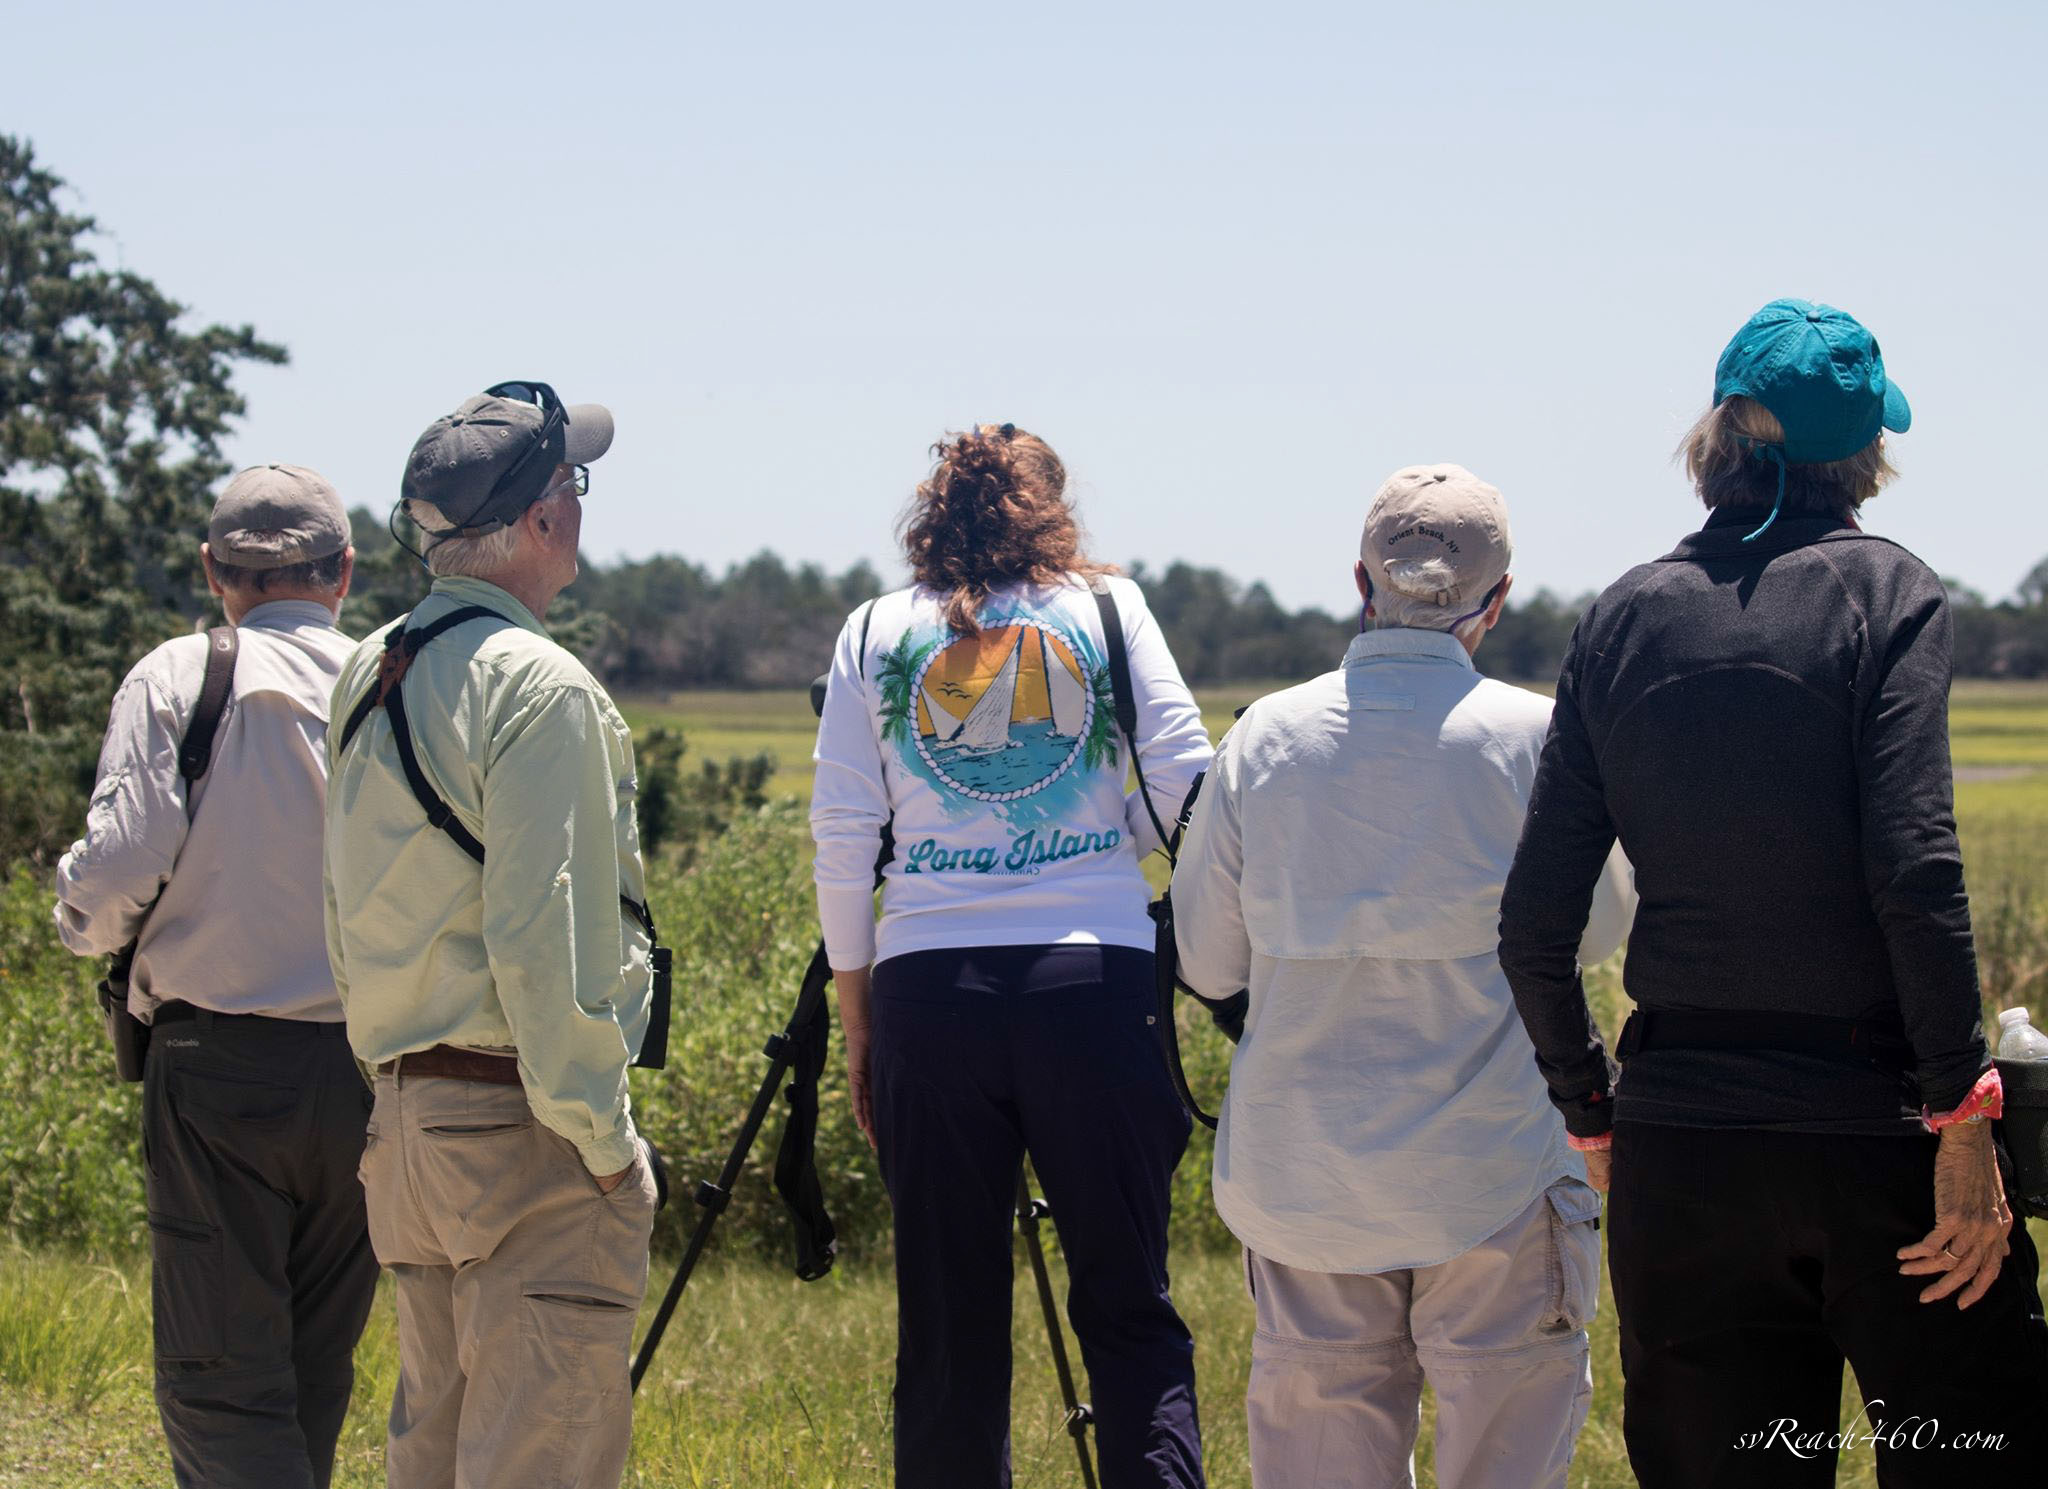 Viewing whimbrels in the scope